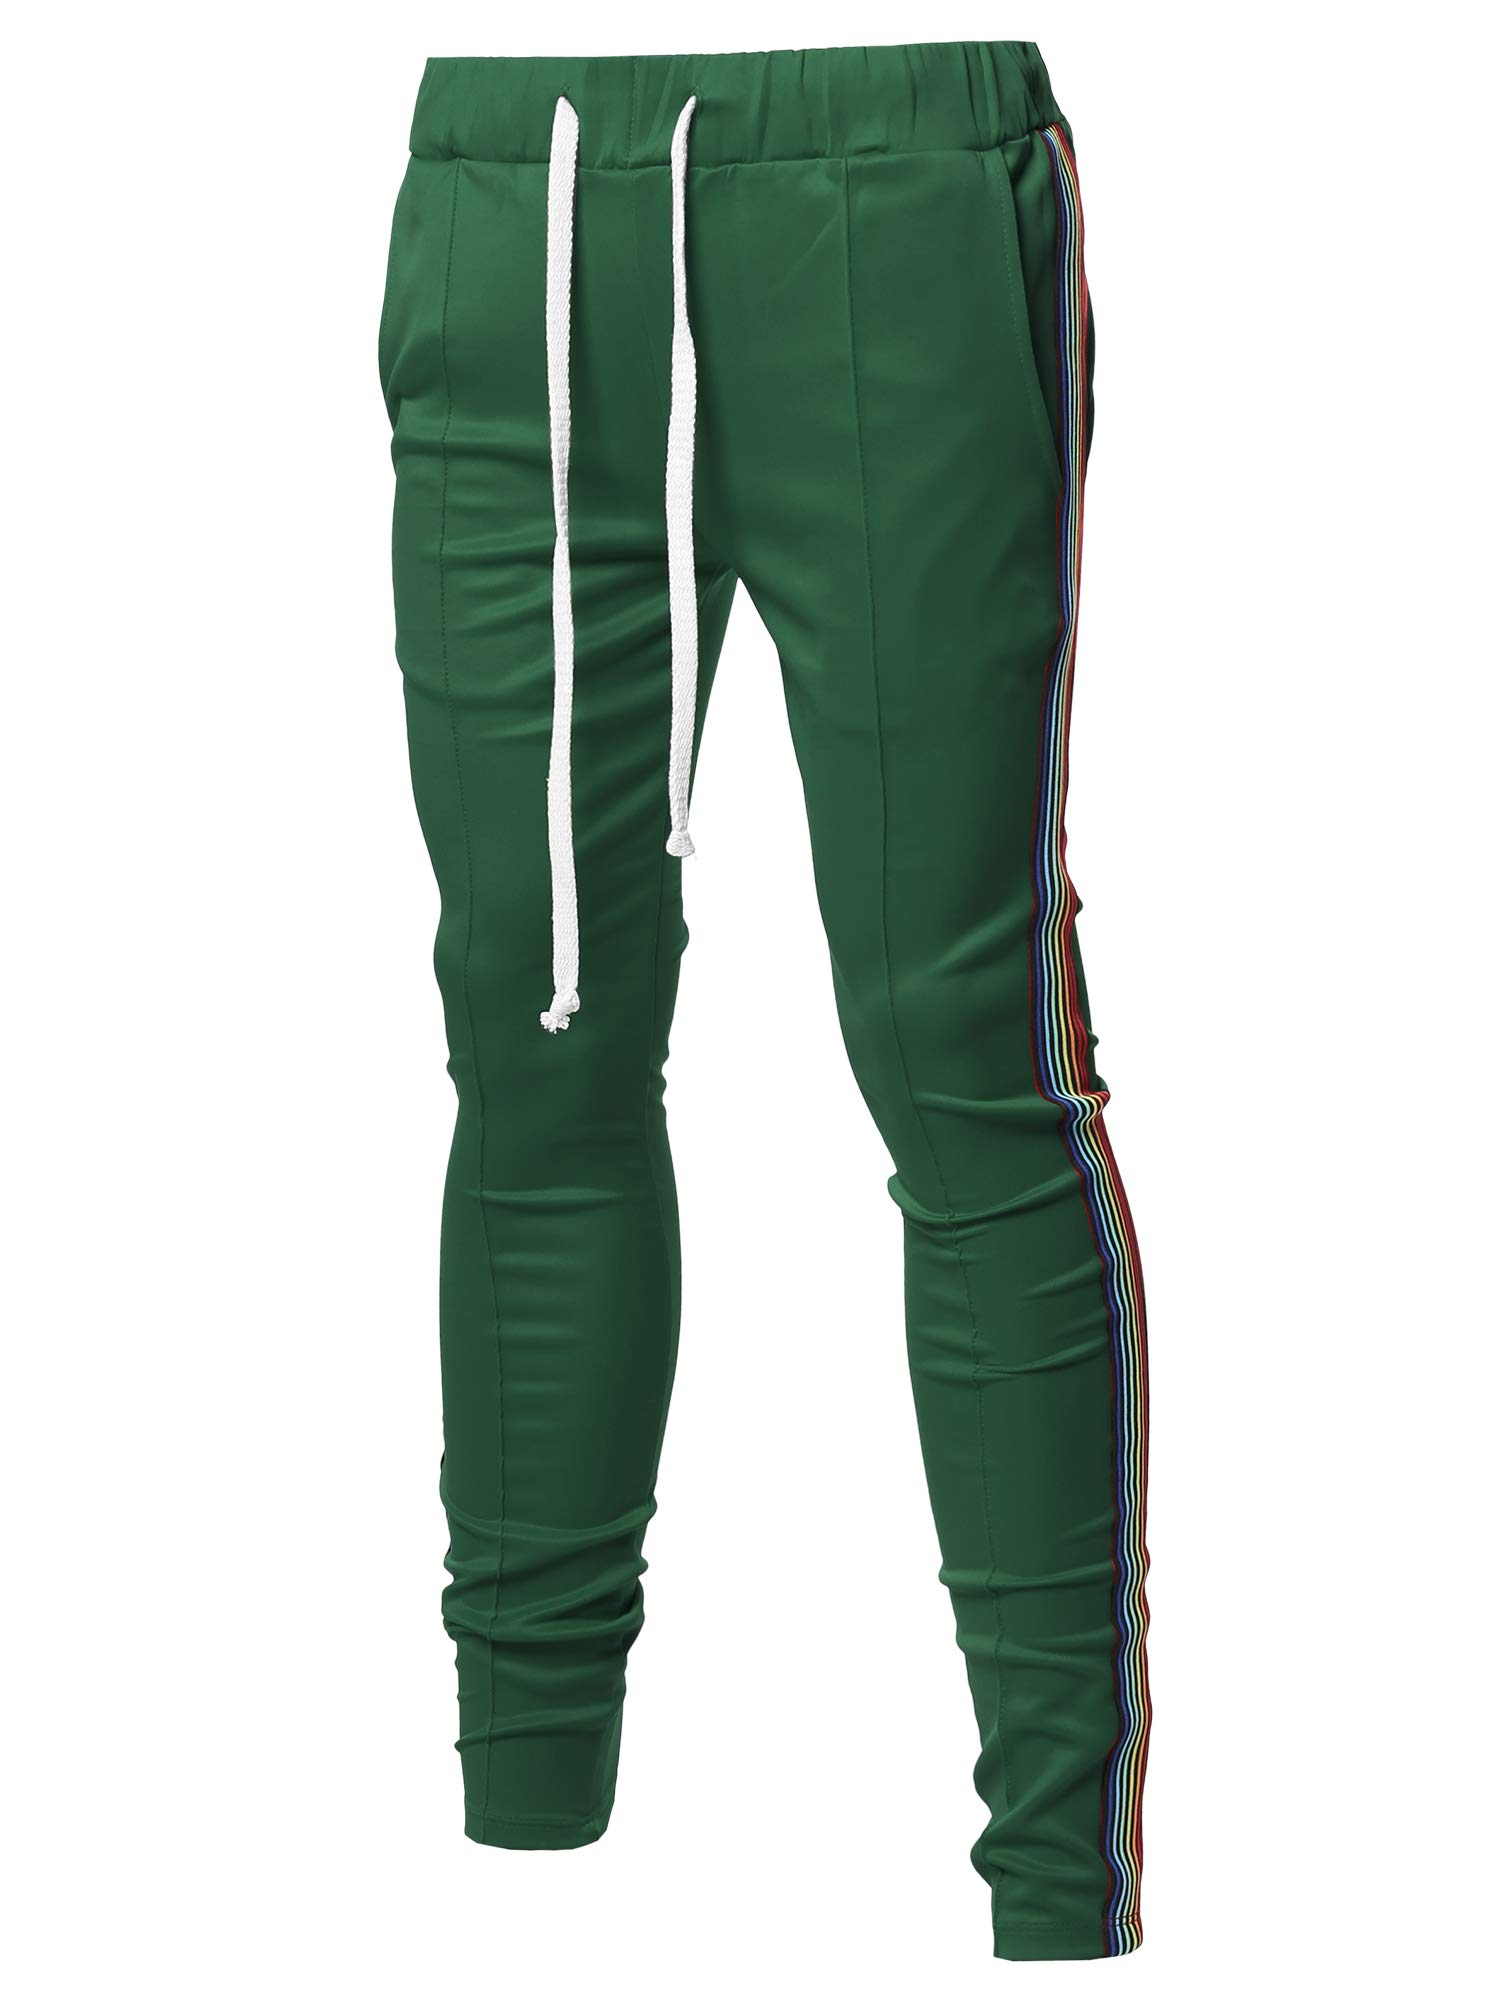 Style by William Men's Dual Side Panel Over Length Drawstring Ankle Zipper Track Pants